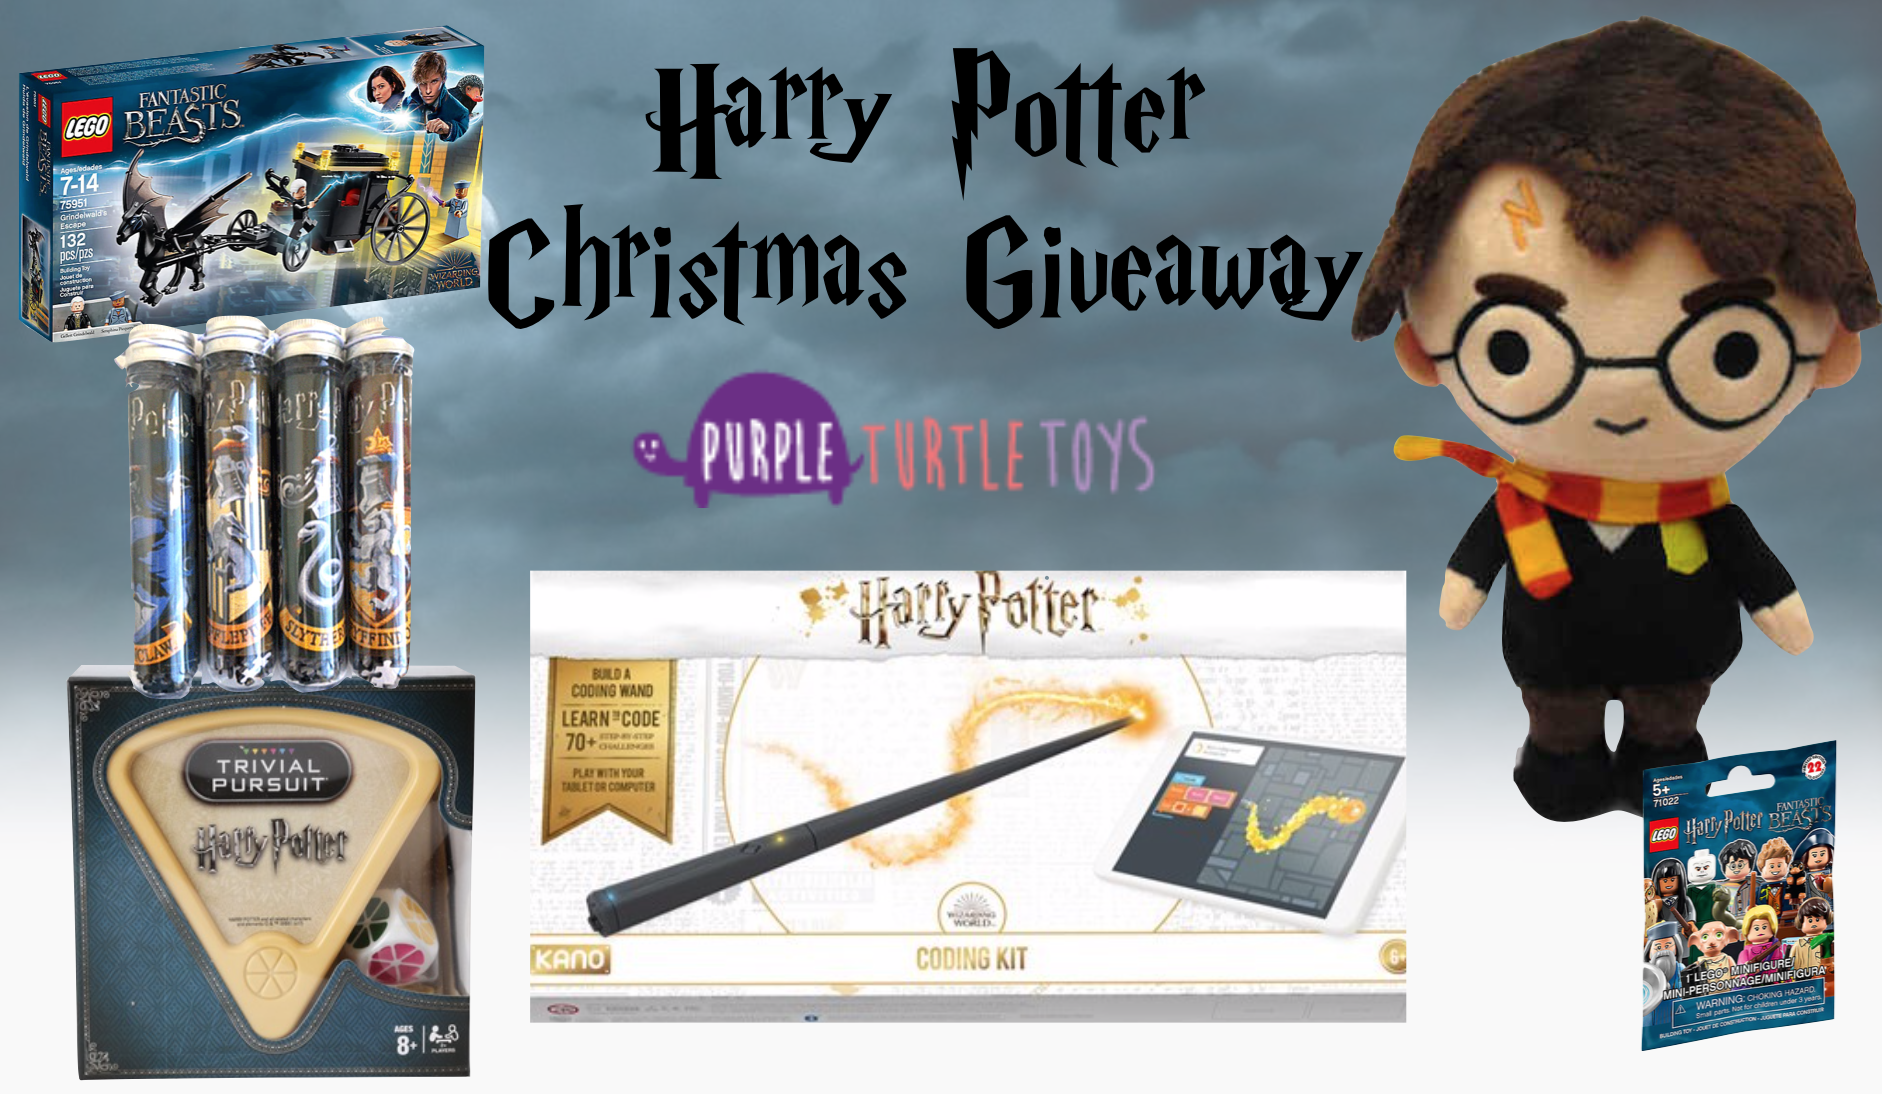 Harry Potter Christmas Giveaway